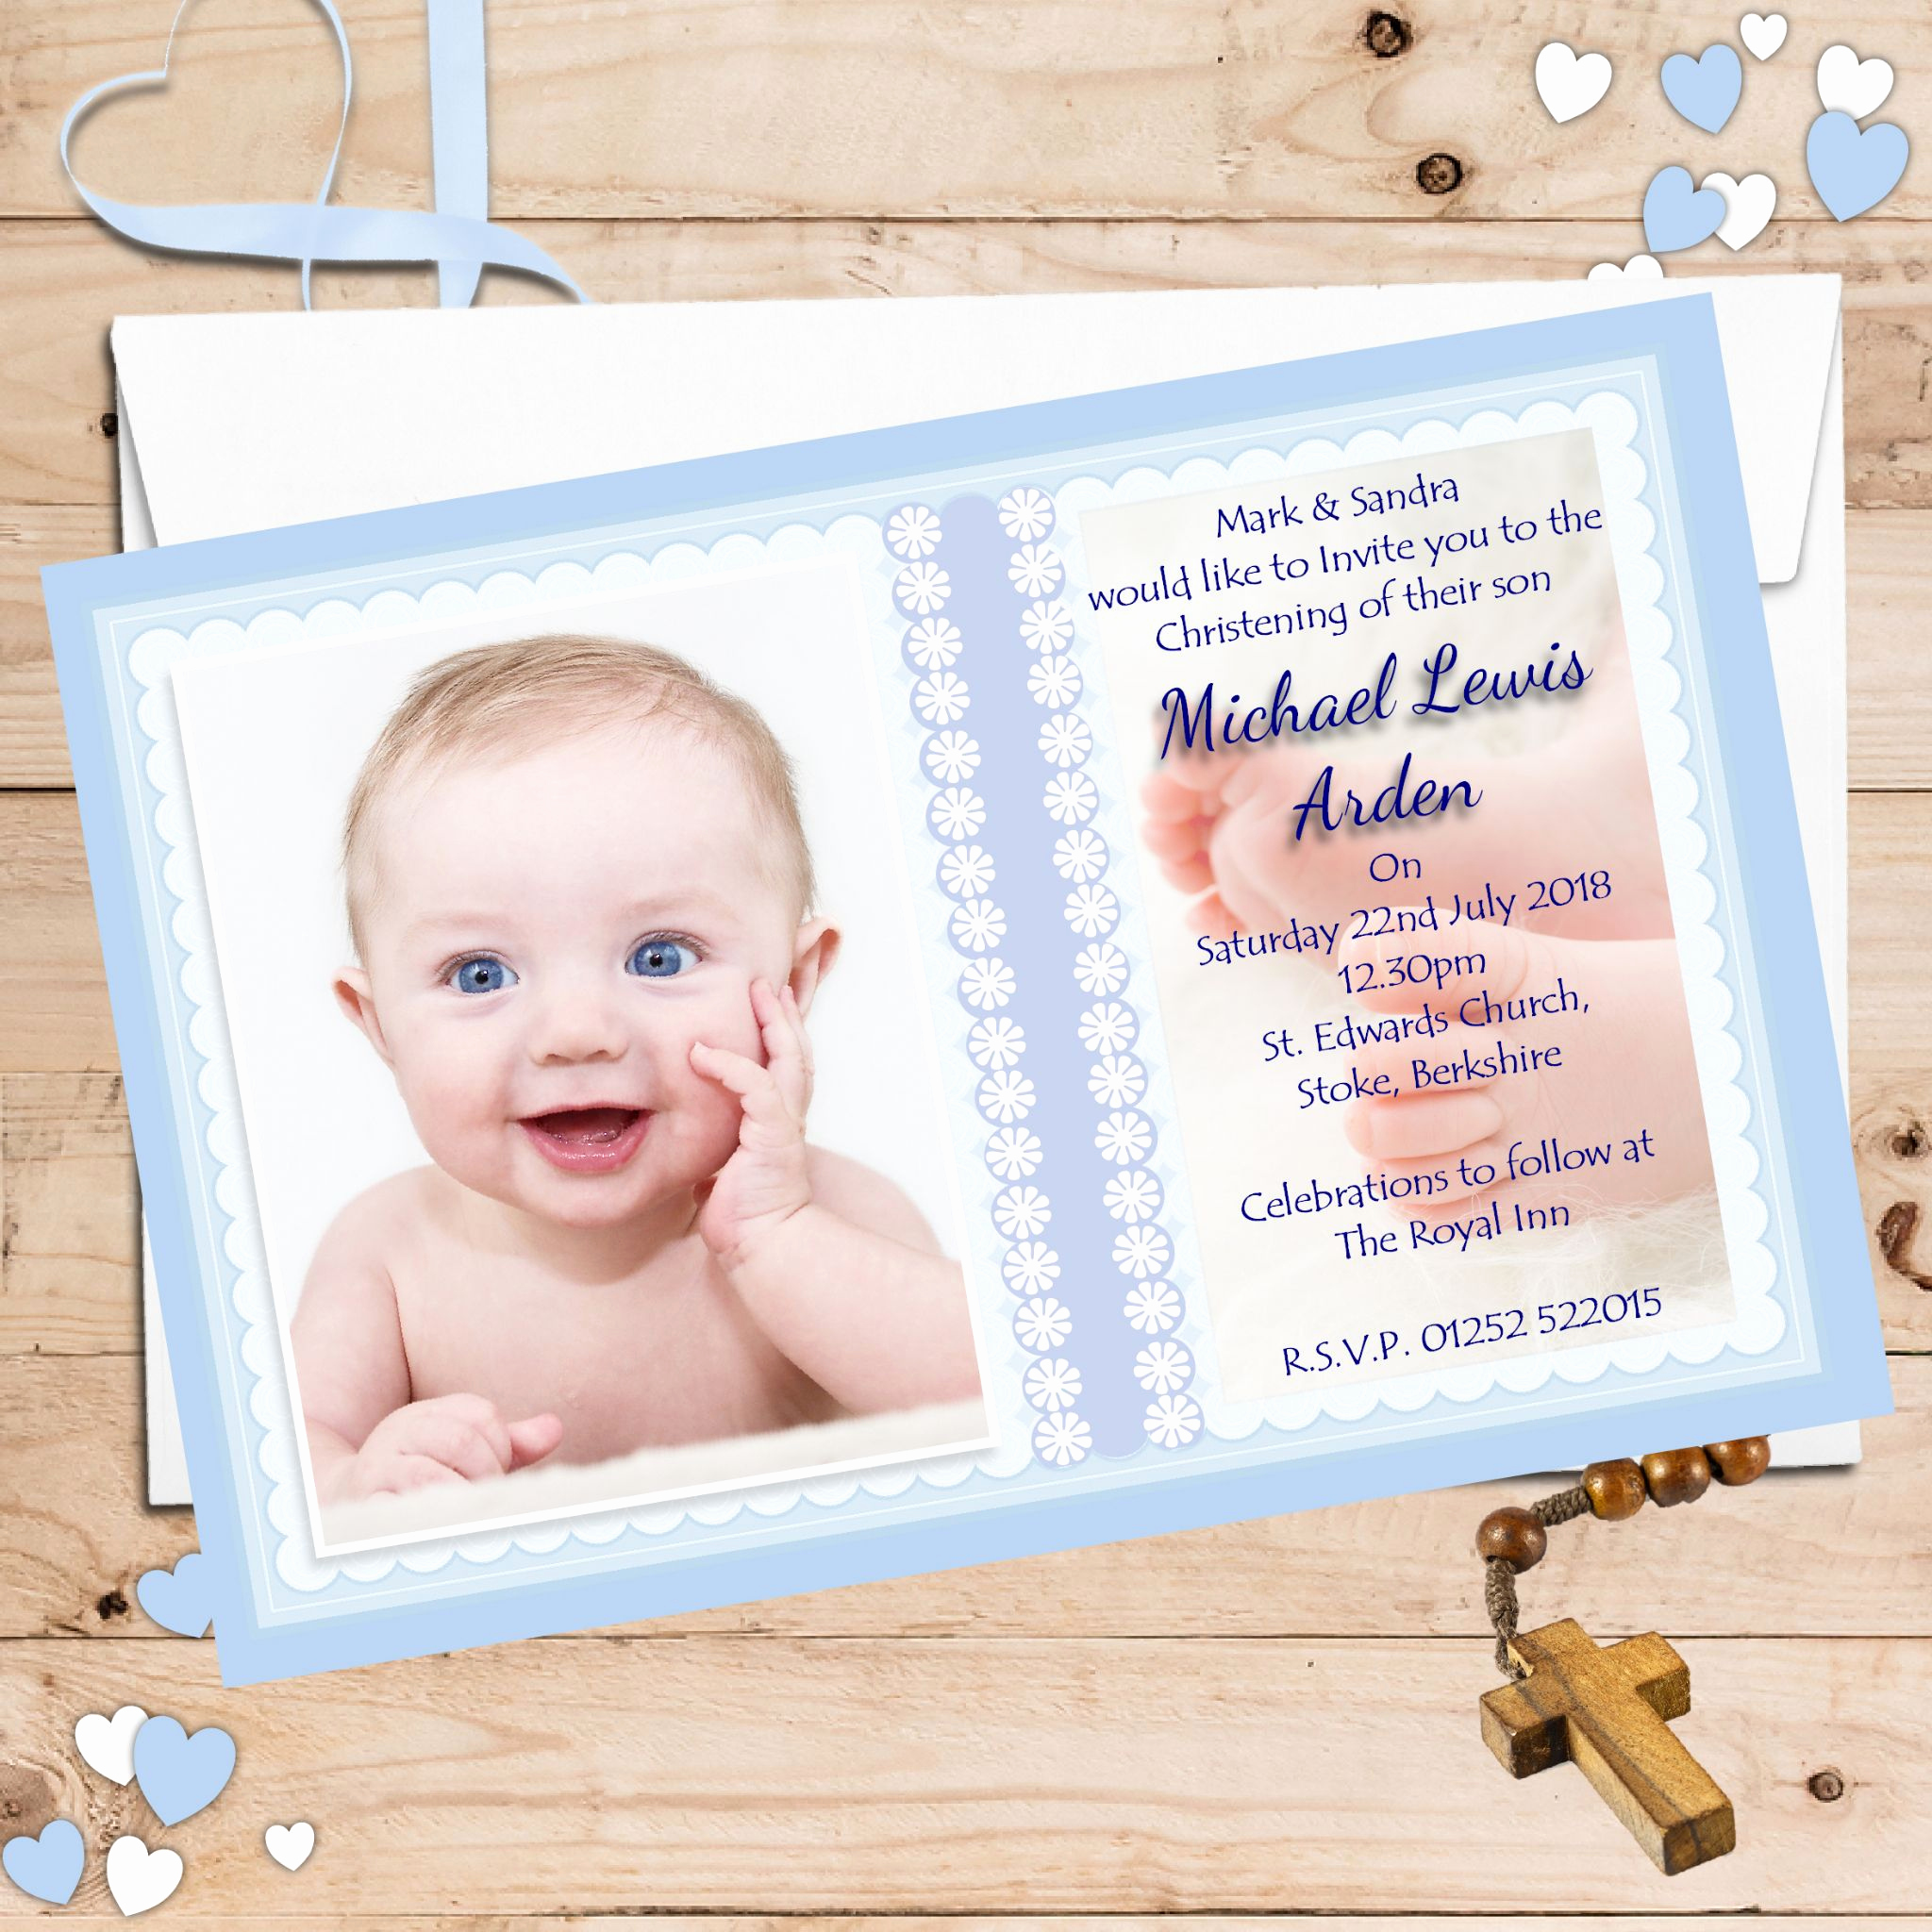 Christening Invitation for Baby Boy Inspirational 10 Personalised Boys Christening Baptism Invitations Photo